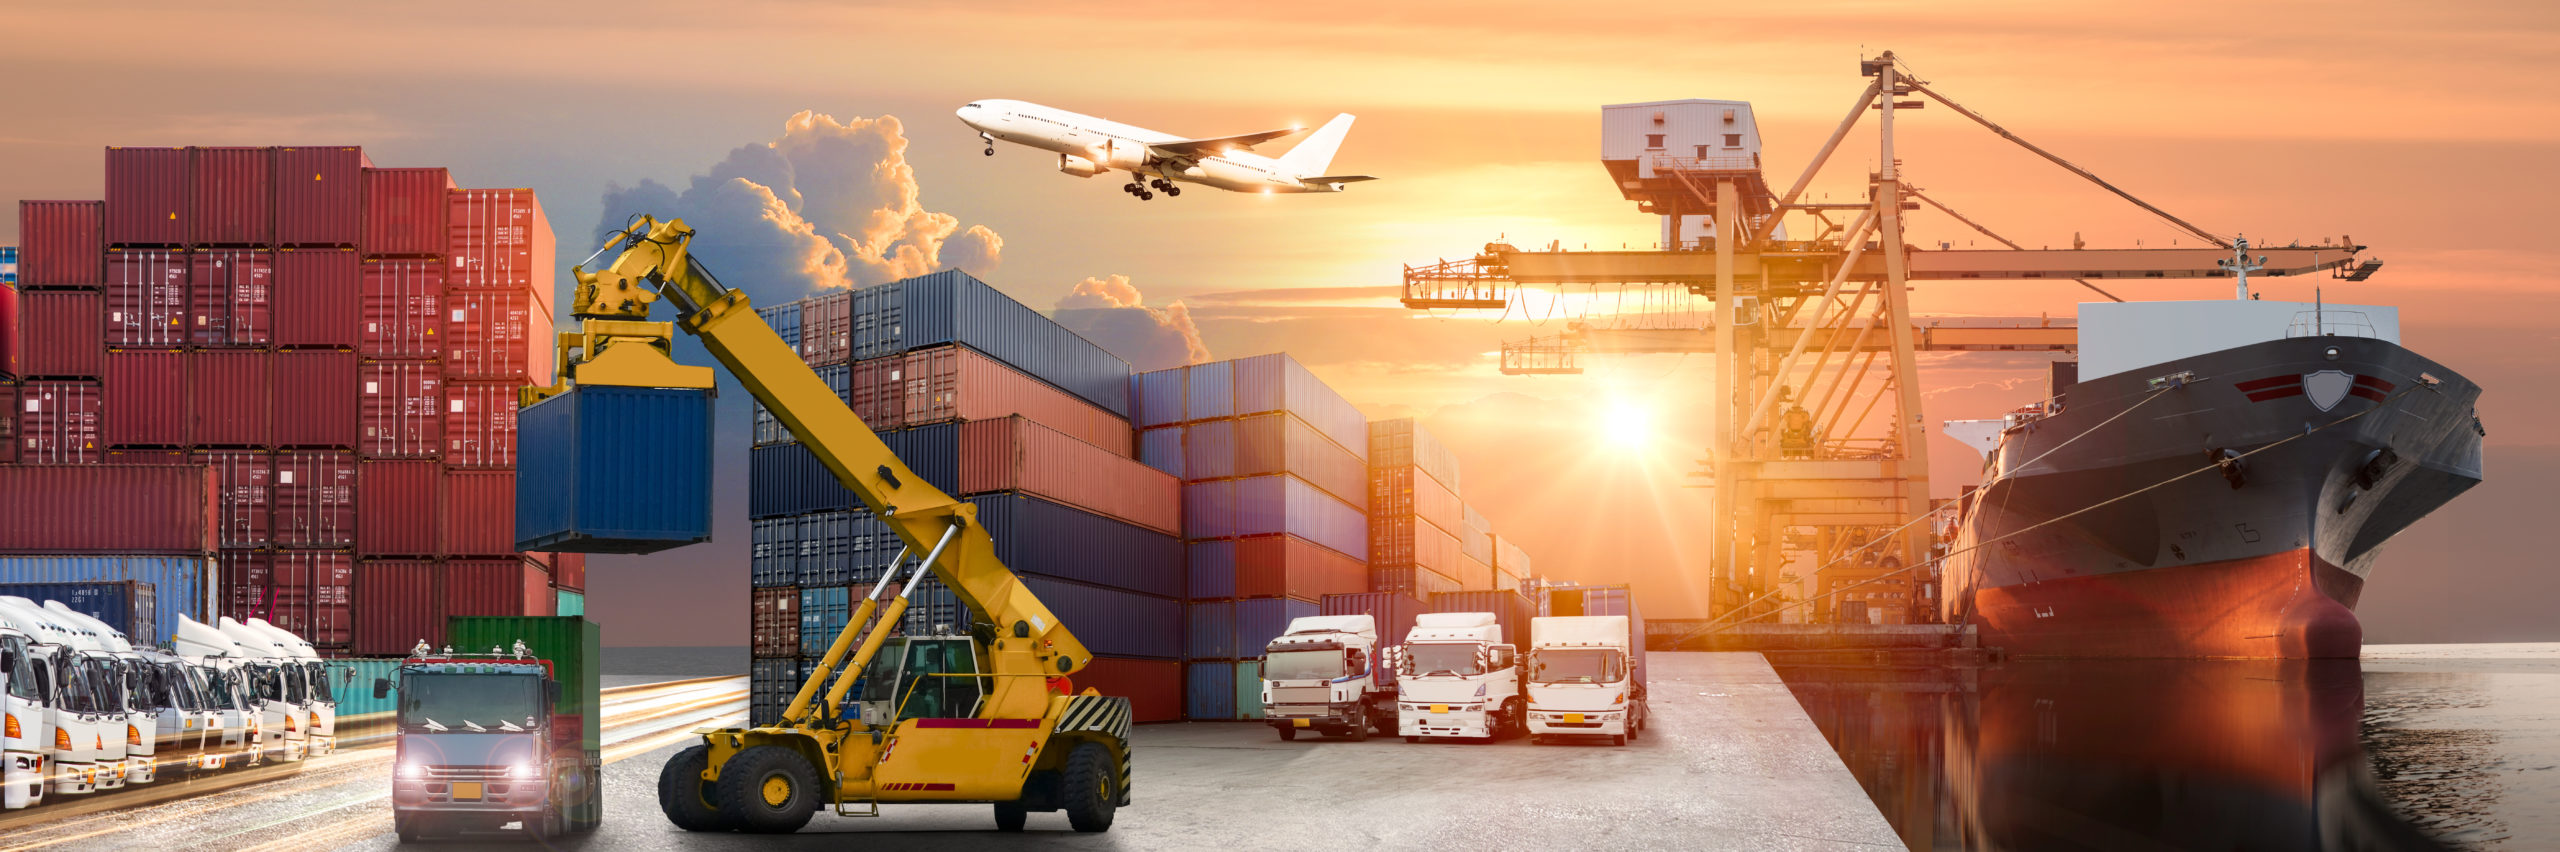 Logistics and transportation of Container Cargo ship and Cargo plane with working crane bridge in shipyard at sunrise, logistic import export and transport industry background - Image